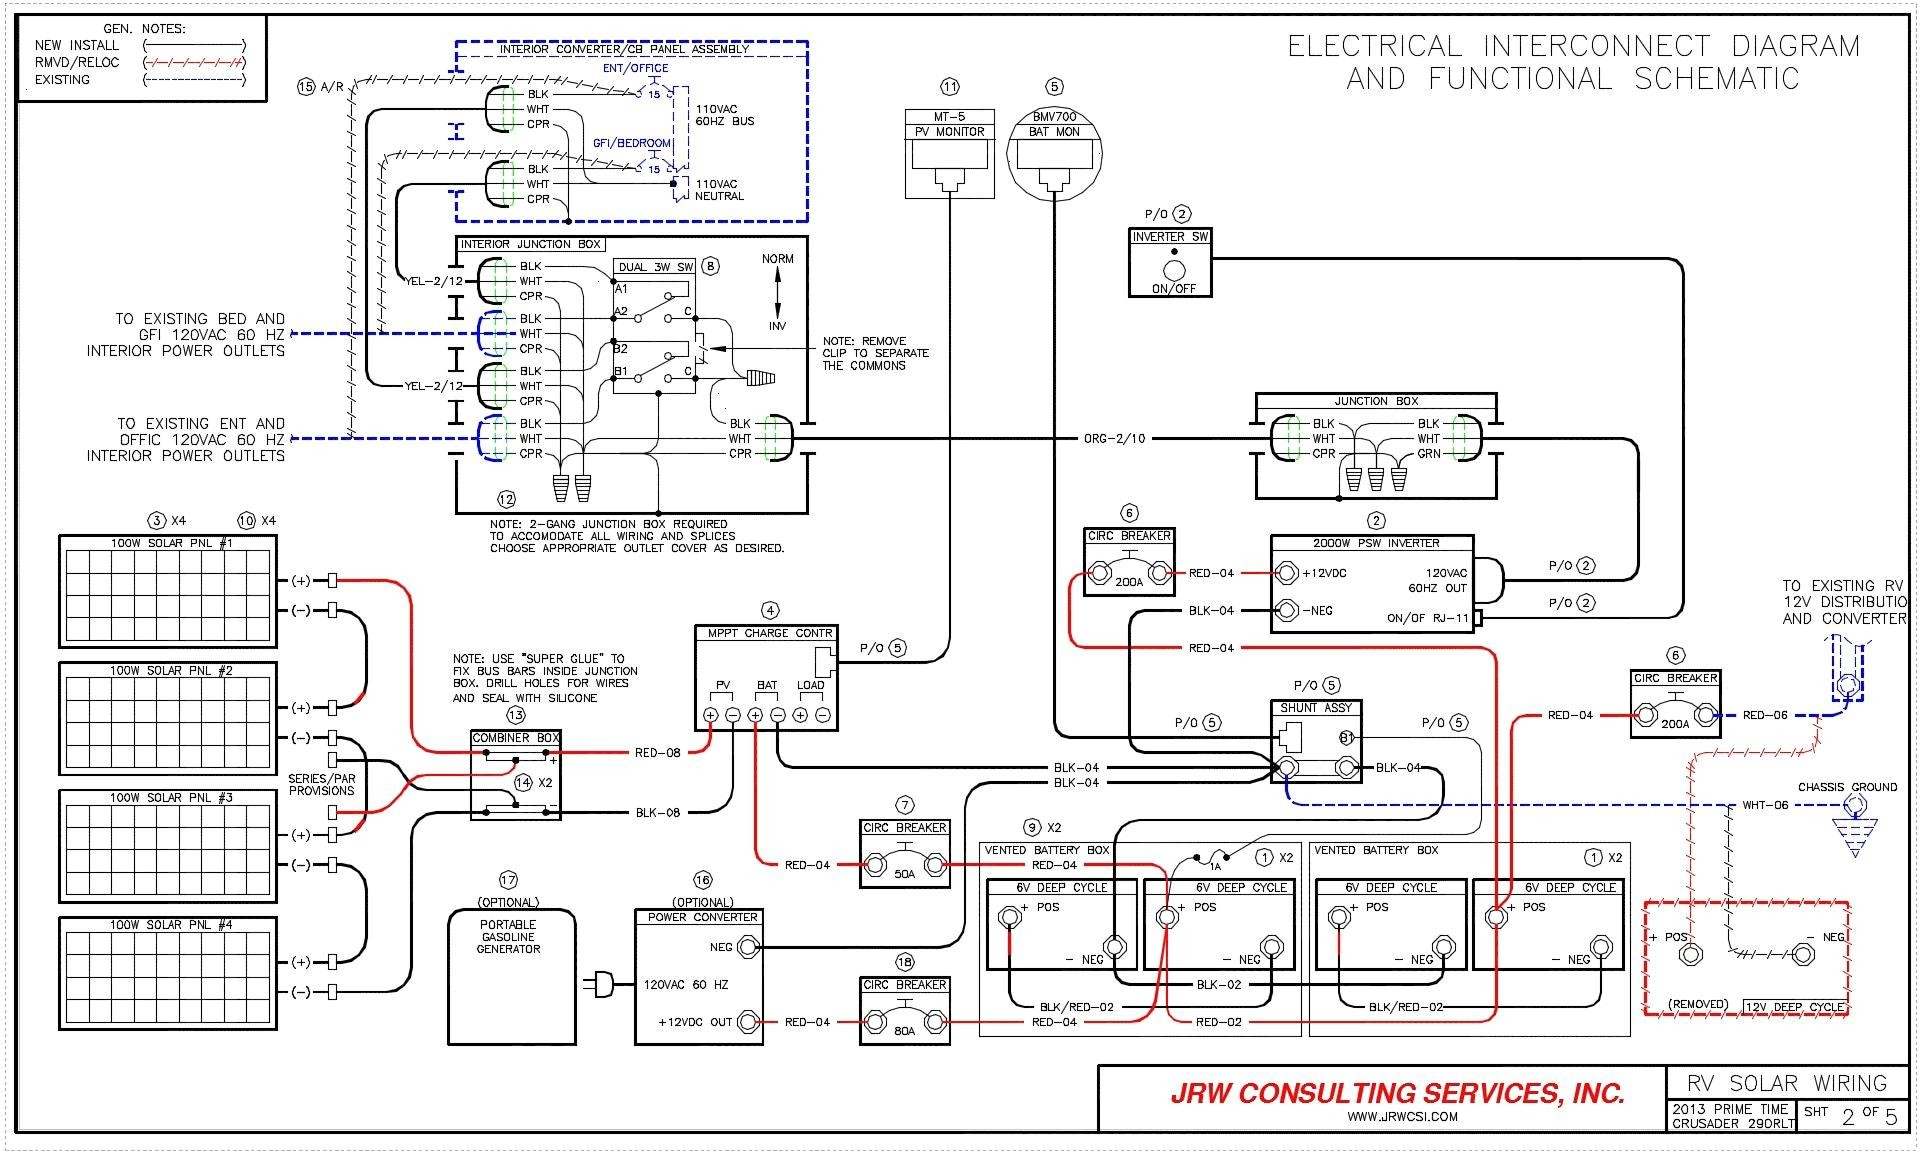 Rv Inverter Wiring Diagram Floralfrocks At In Power Converter Rv Power Upgrade Live Breathe Move Beautiful Wiring Diagram For Solar System Jpg Resize